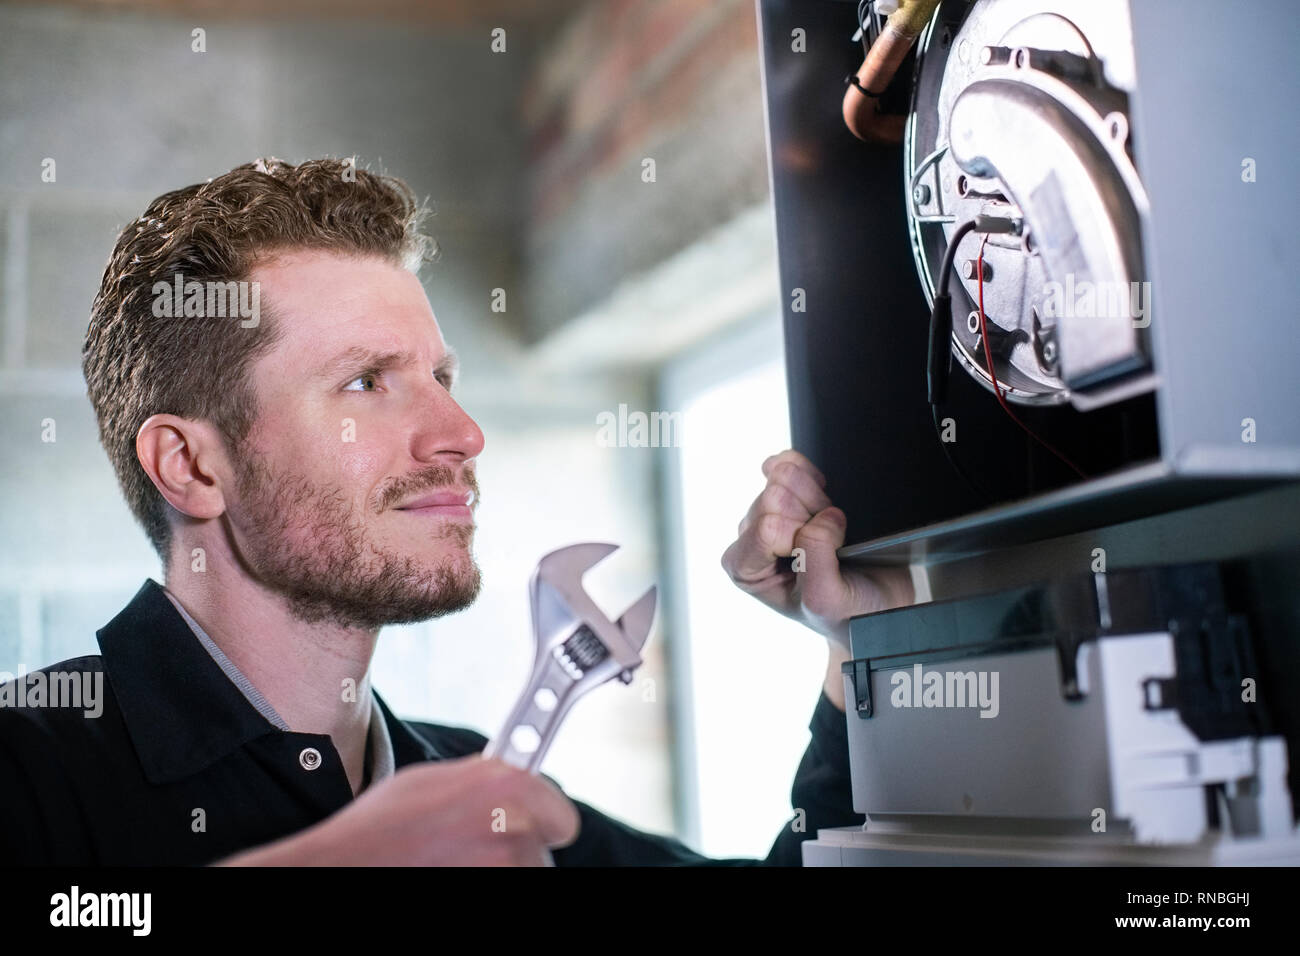 Male Heating Engineer With Adjustable Wrench Servicing Boiler - Stock Image